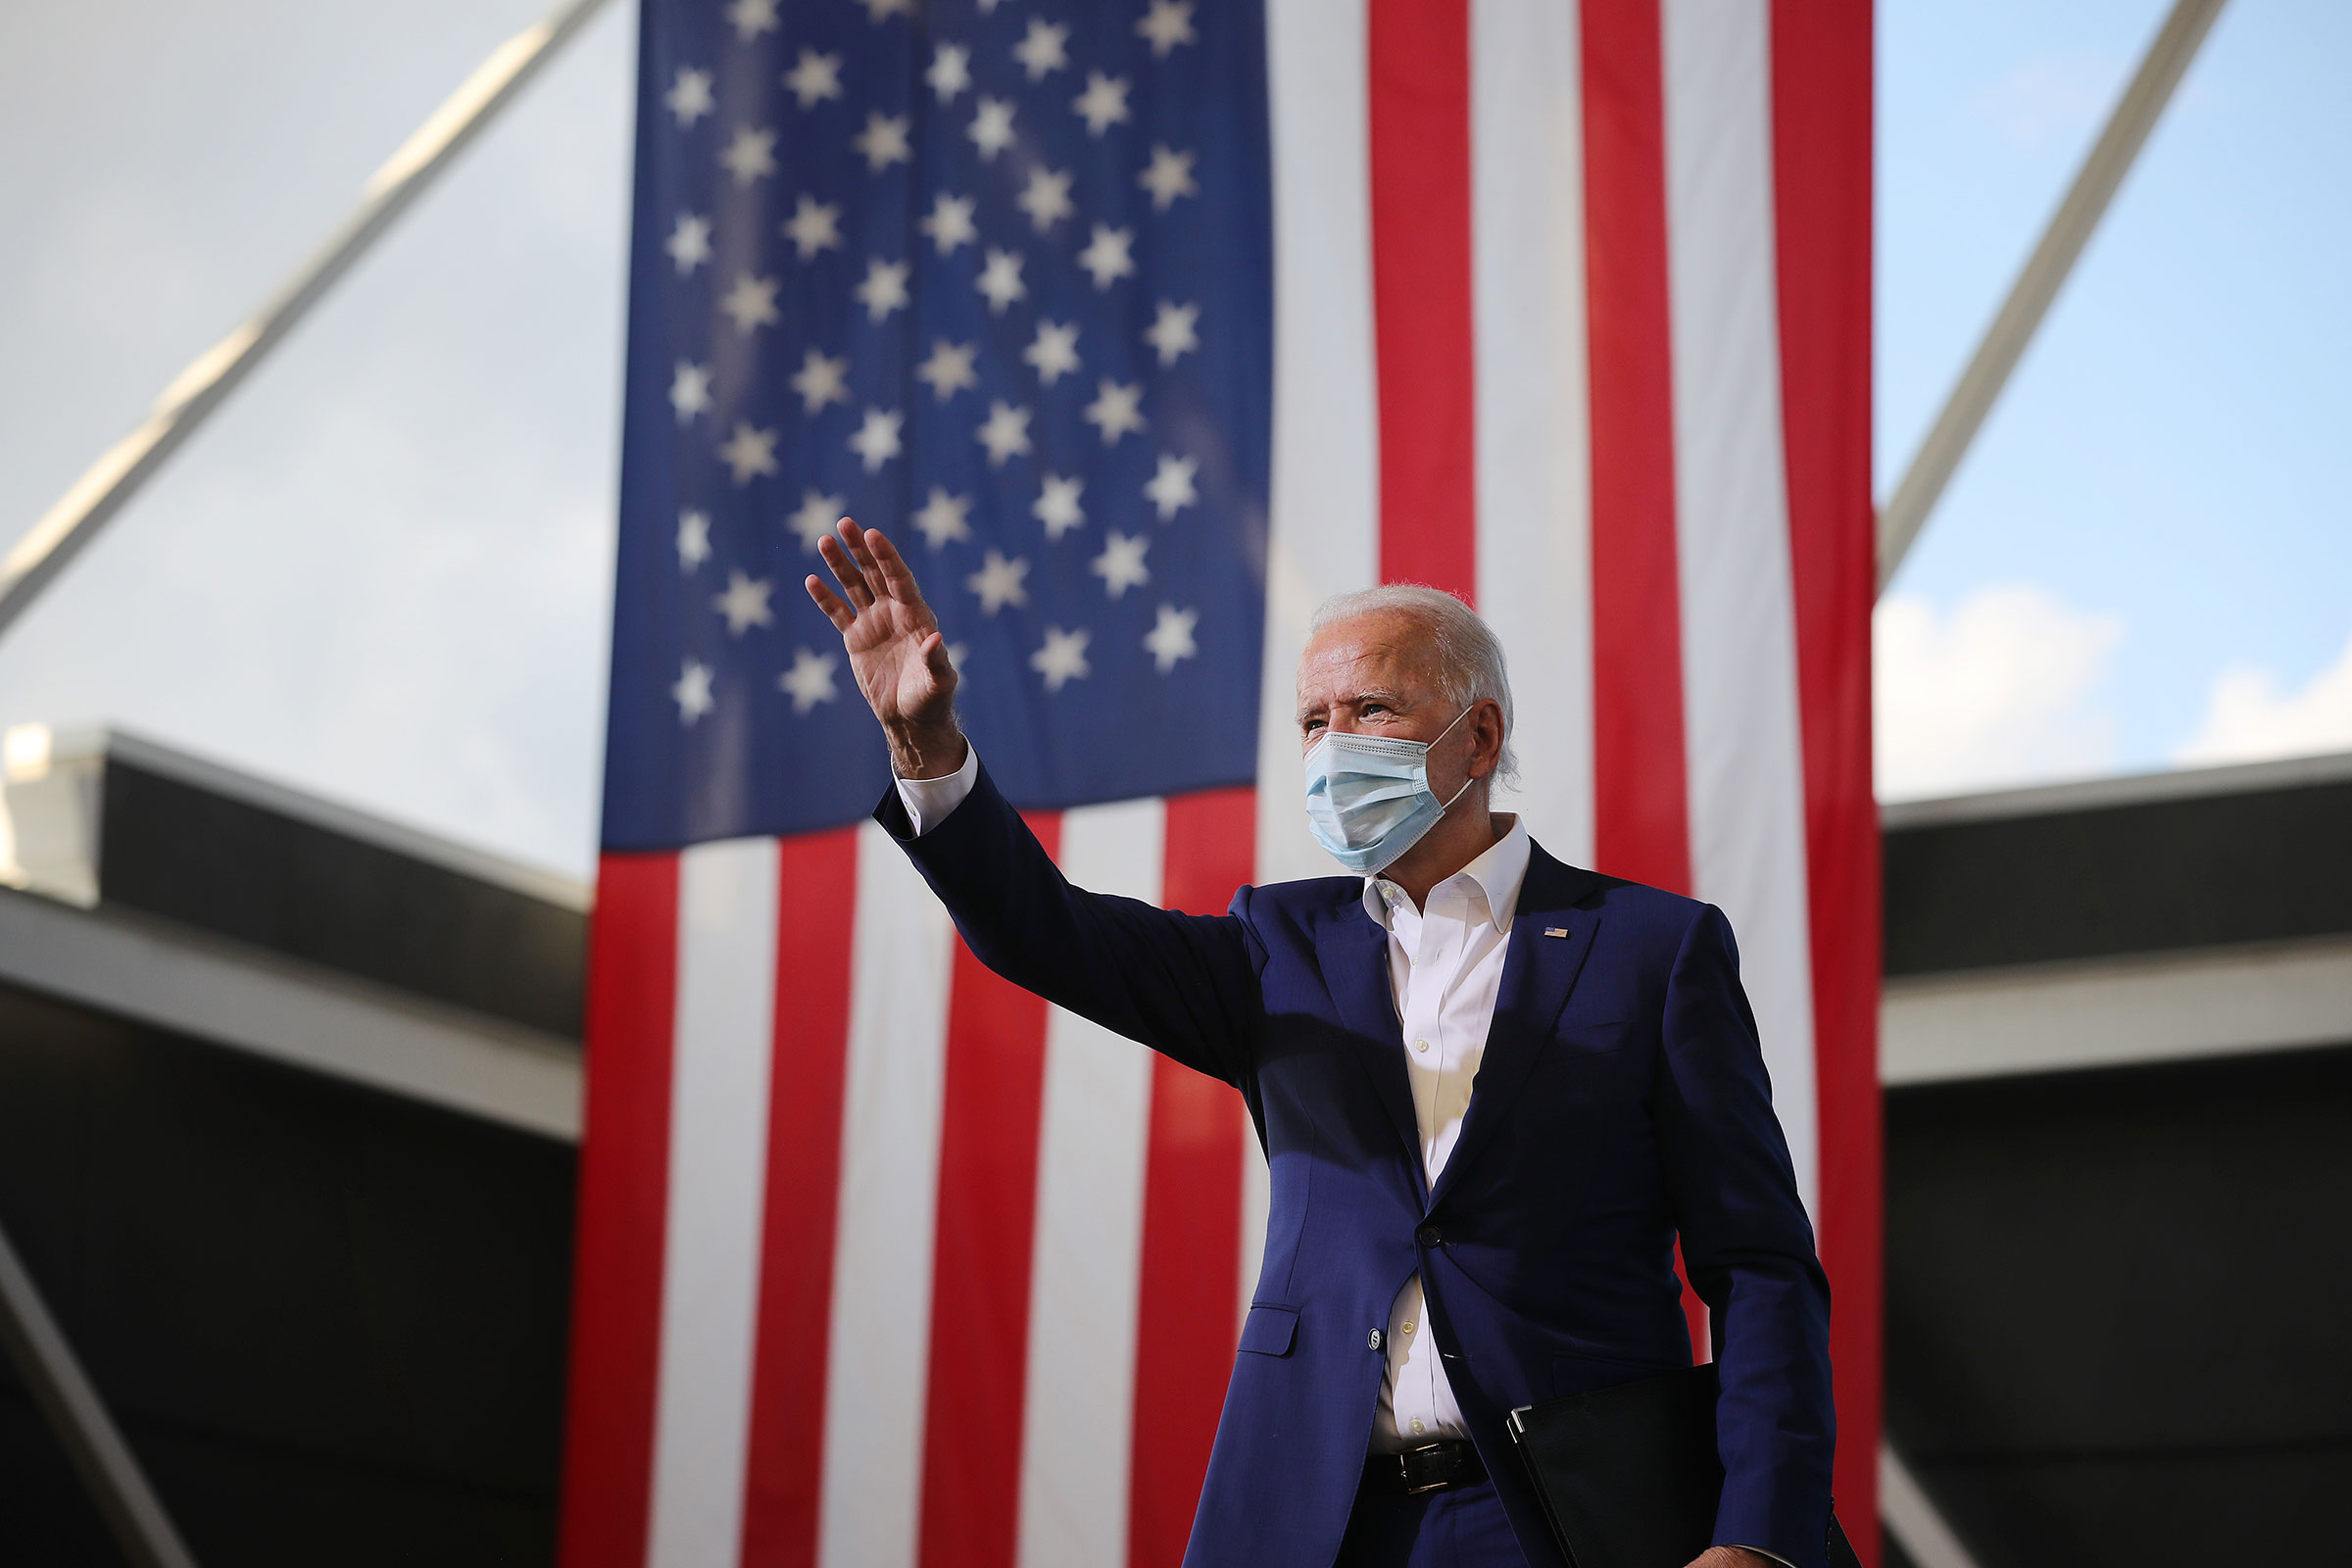 Democratic presidential nominee Joe Biden waves to supporters during a drive-in voter mobilization event at Miramar Regional Park on October 13 in Miramar, Florida.